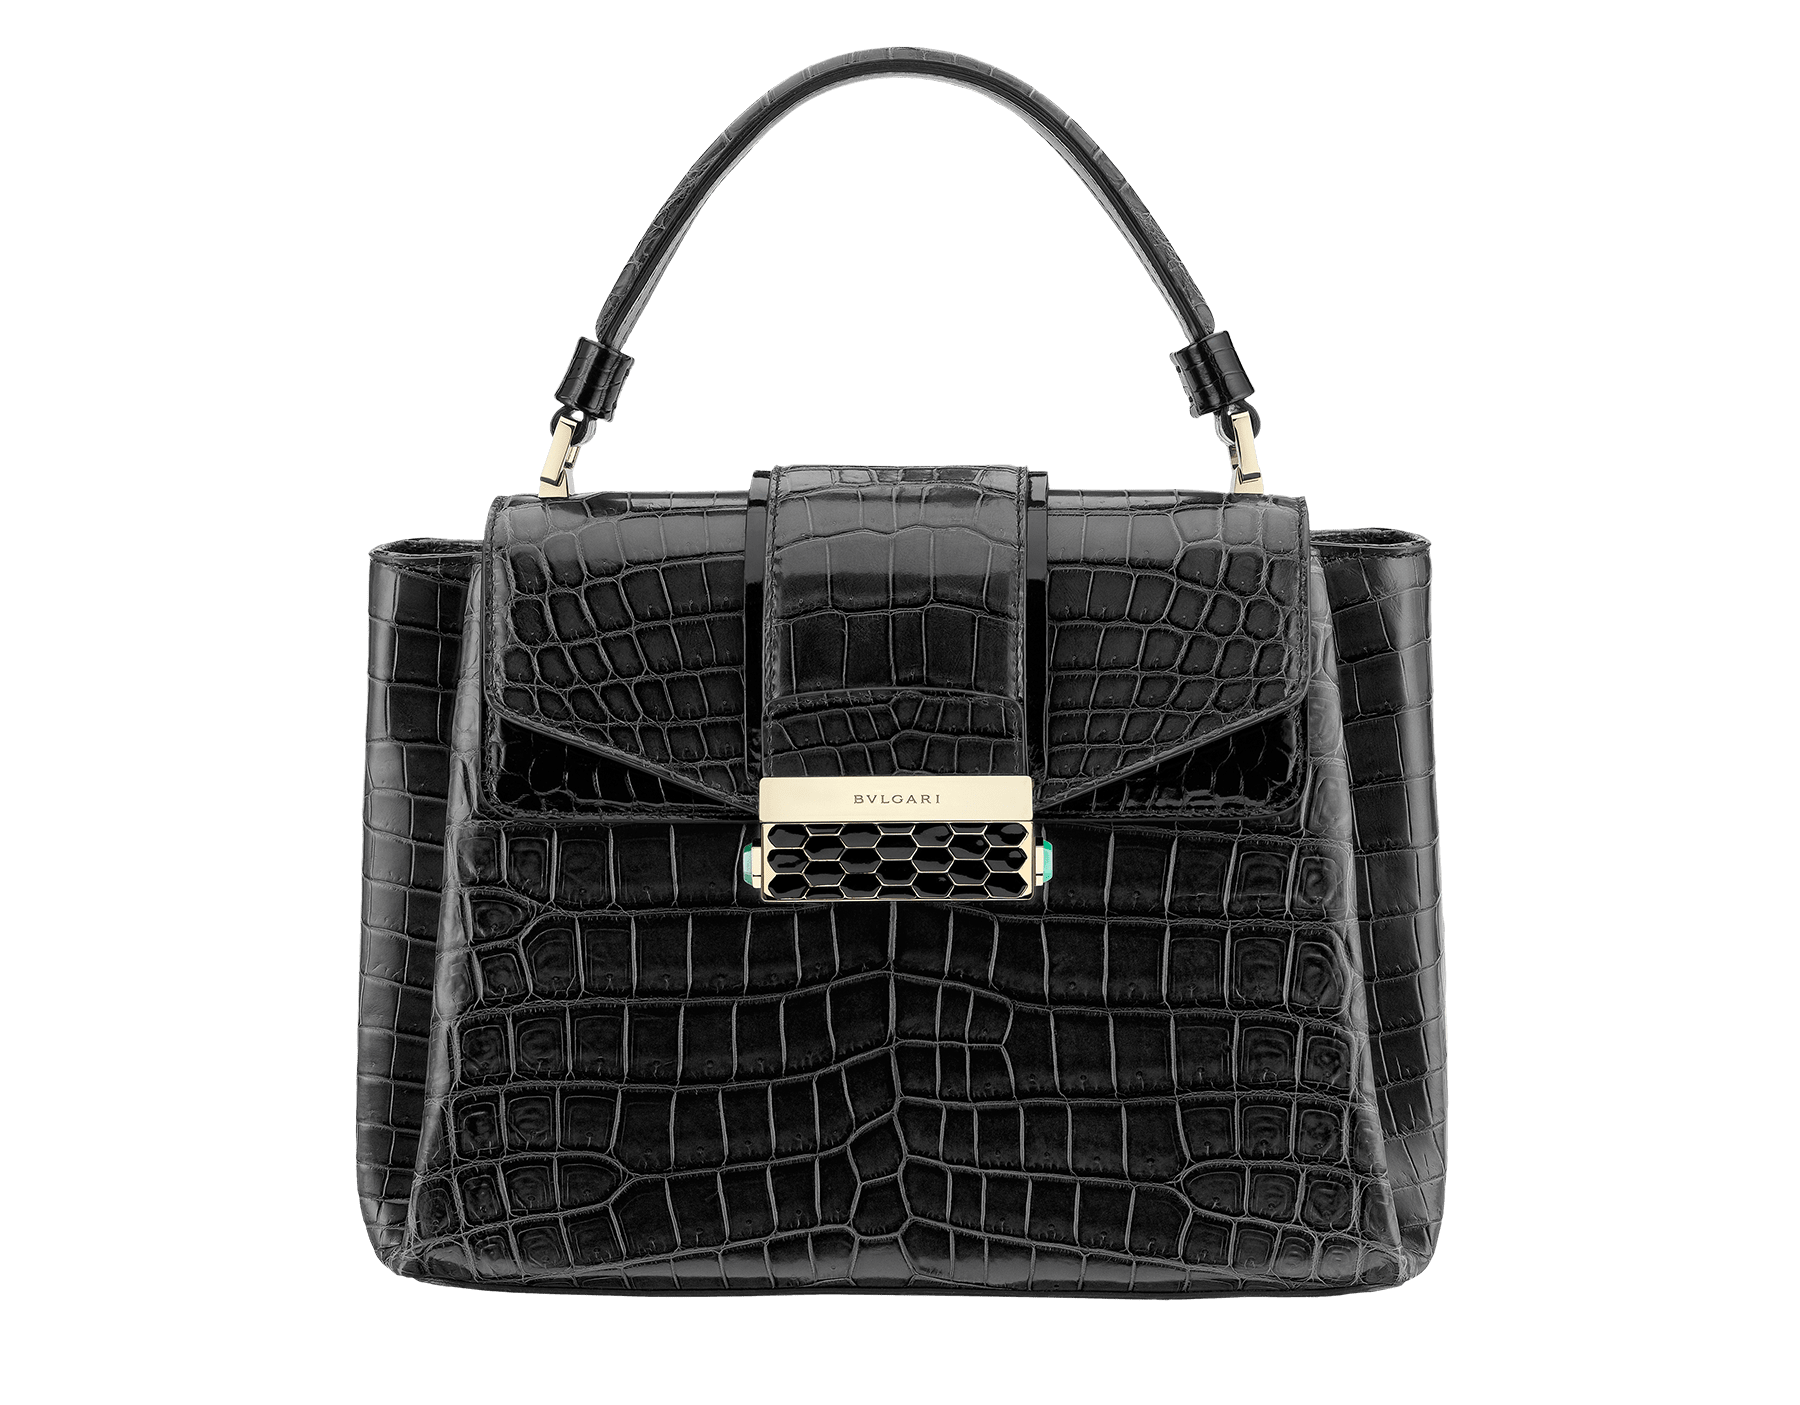 Top handle bag Serpenti Viper in black shiny crocodile skin. Brass light gold plated hardware and snap closure in black shiny enamel with iconic Scaglie design. 283548 image 1